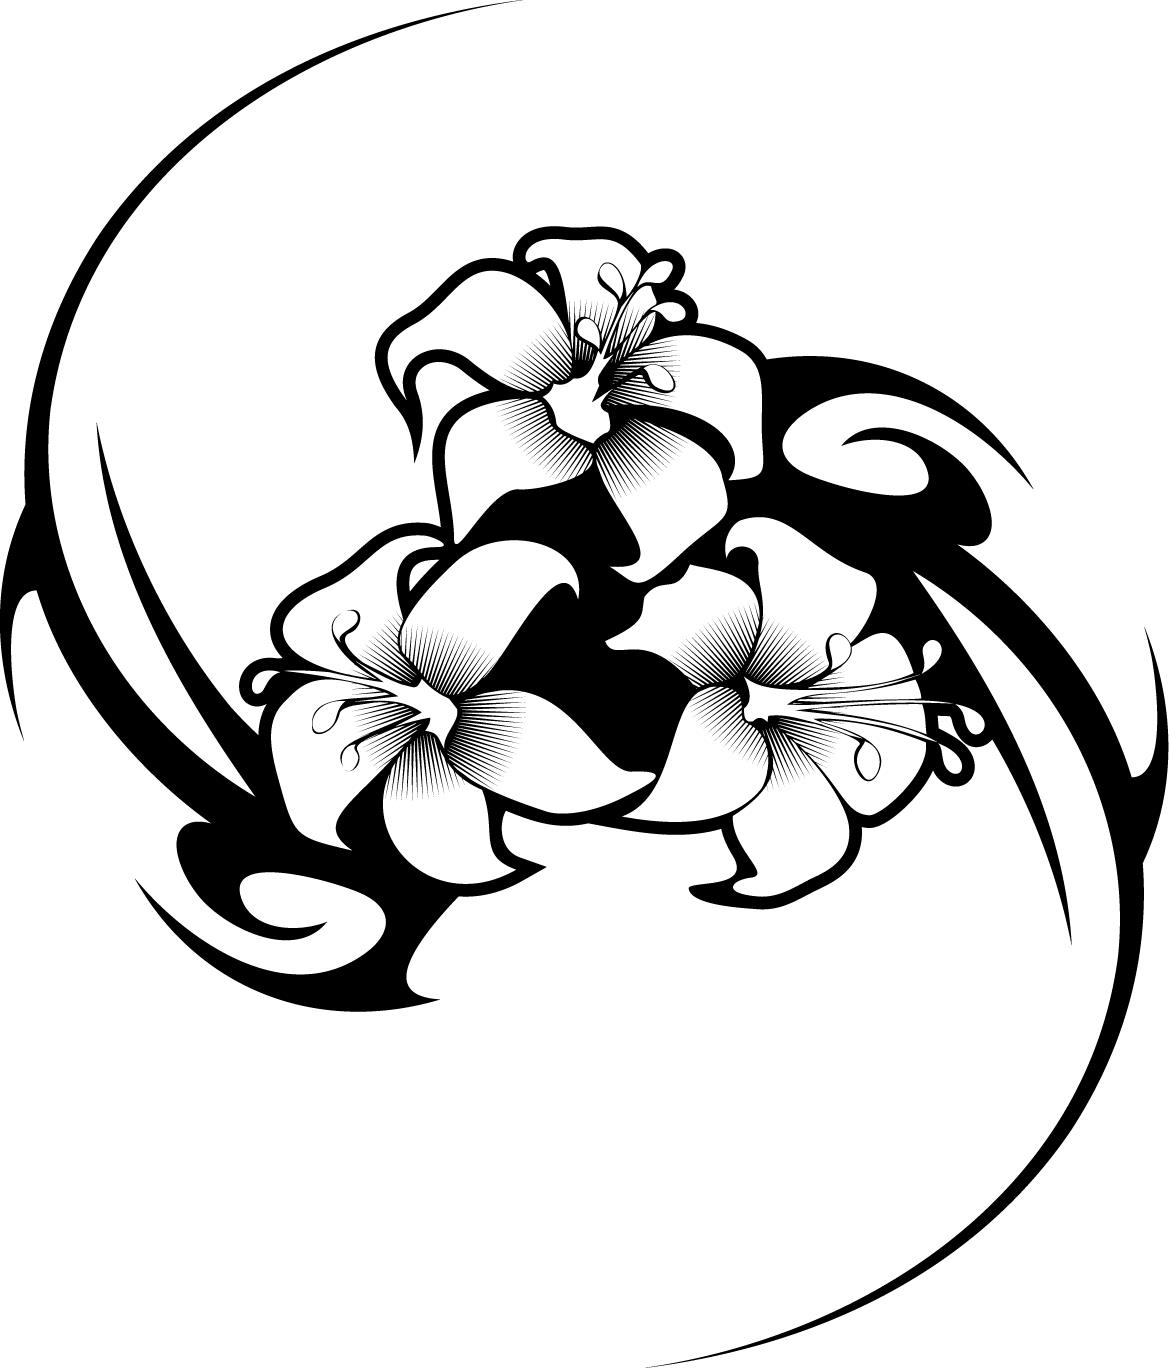 1170x1368 Working Sheet Of A Hibiscus Flower Tattoo Tribal Design